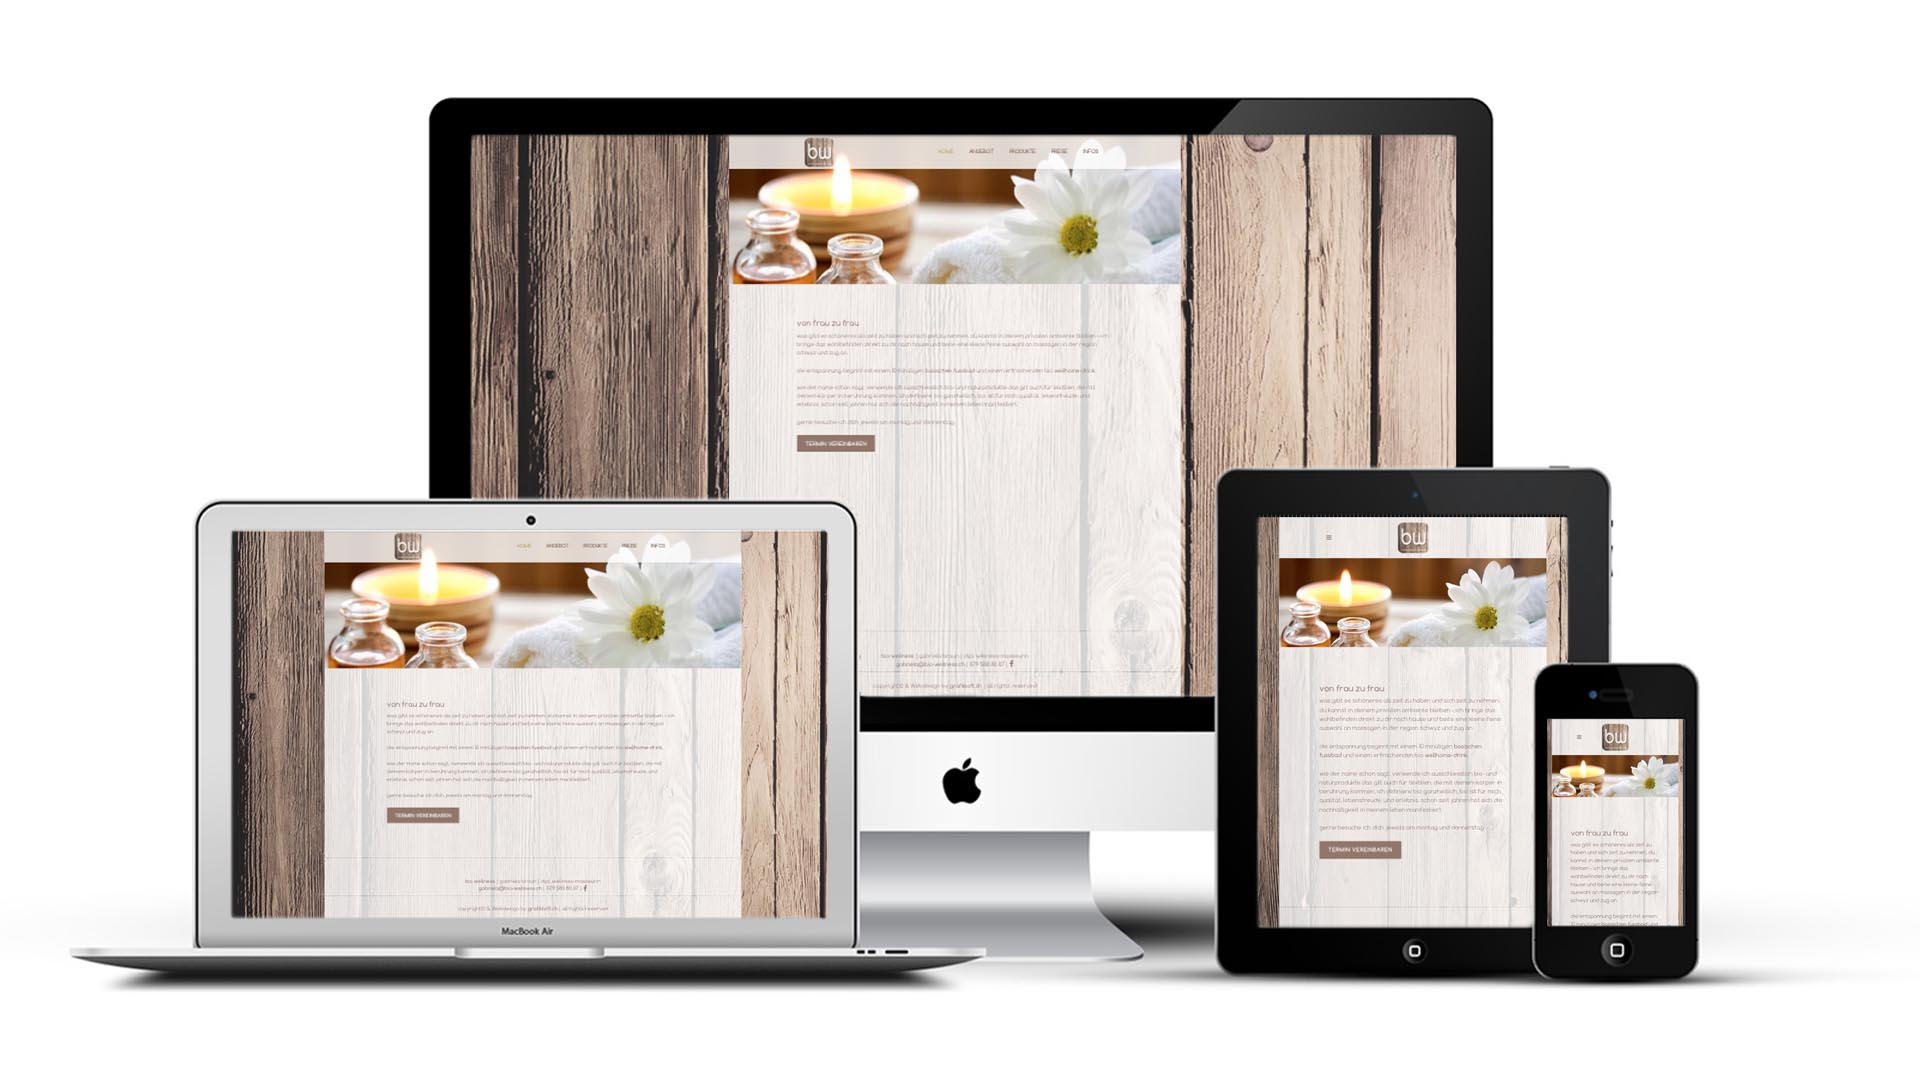 responsiv layout bio wellness